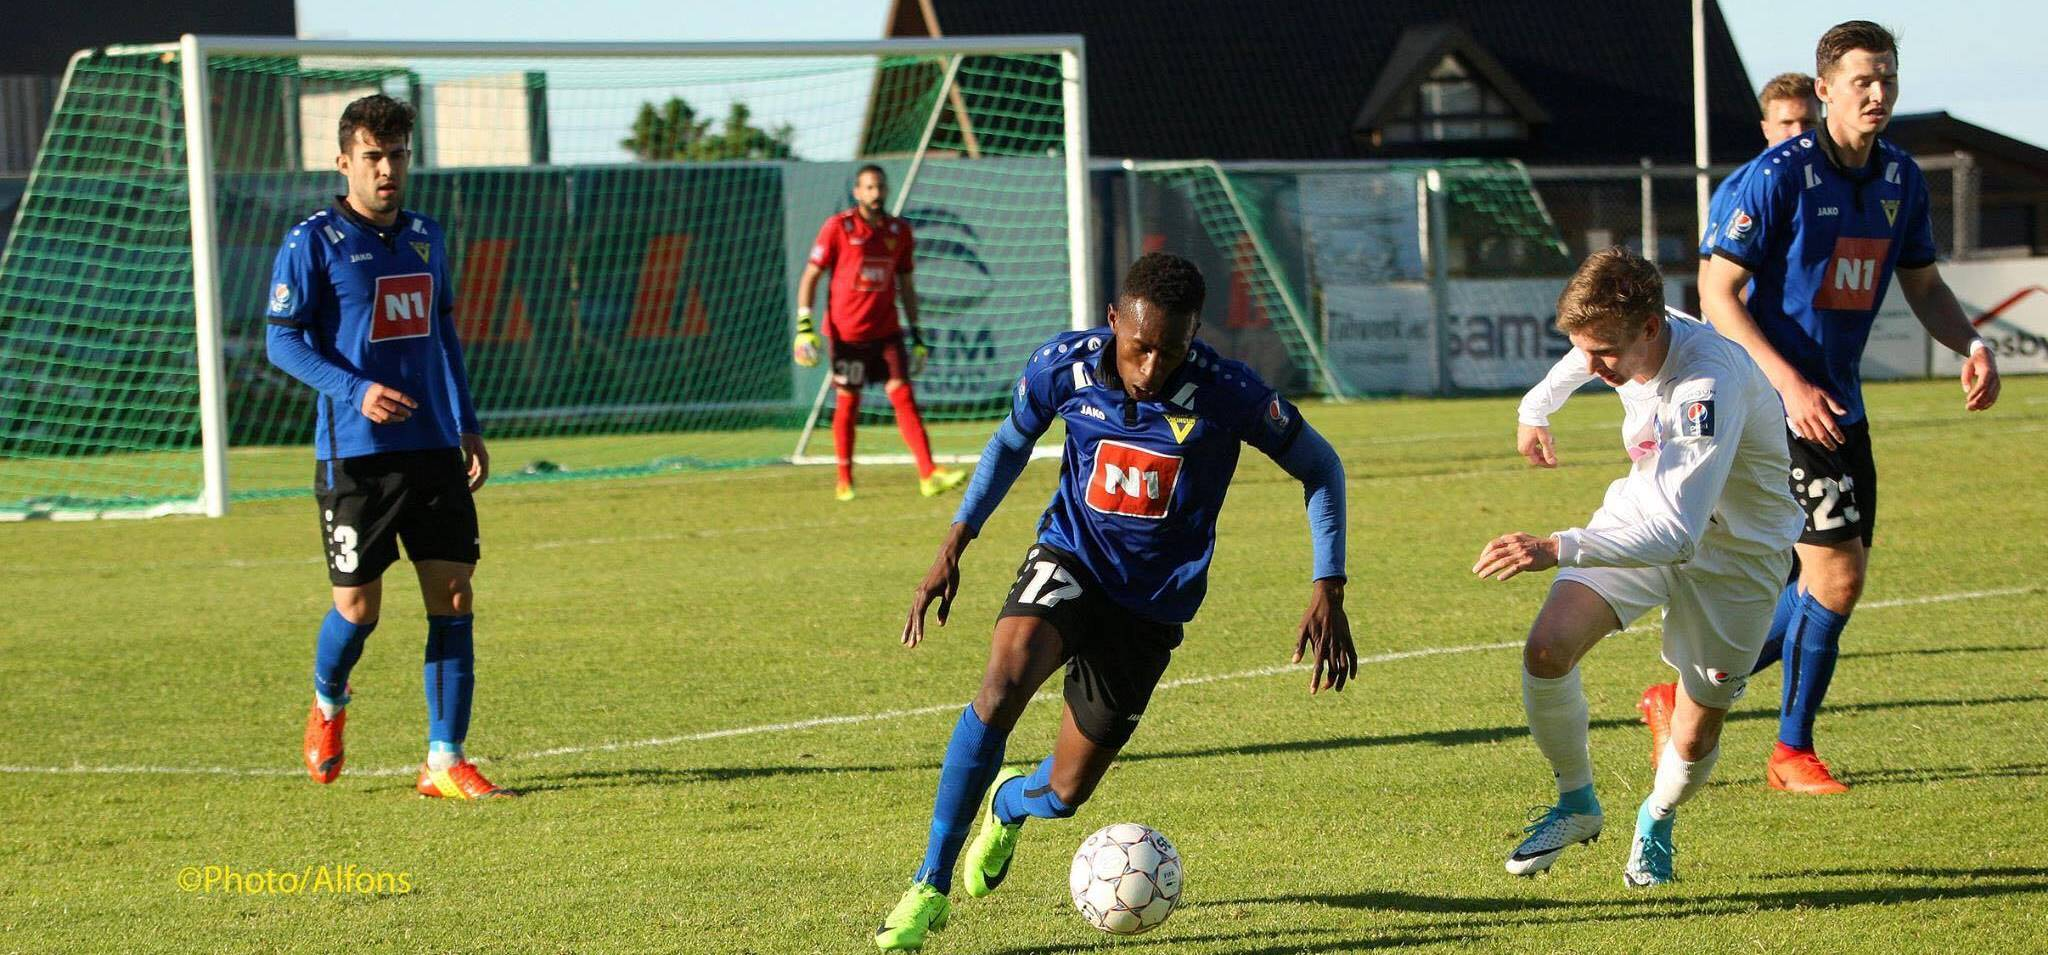 Kwame Quee scores second goal of the season against UMF Stjarnan